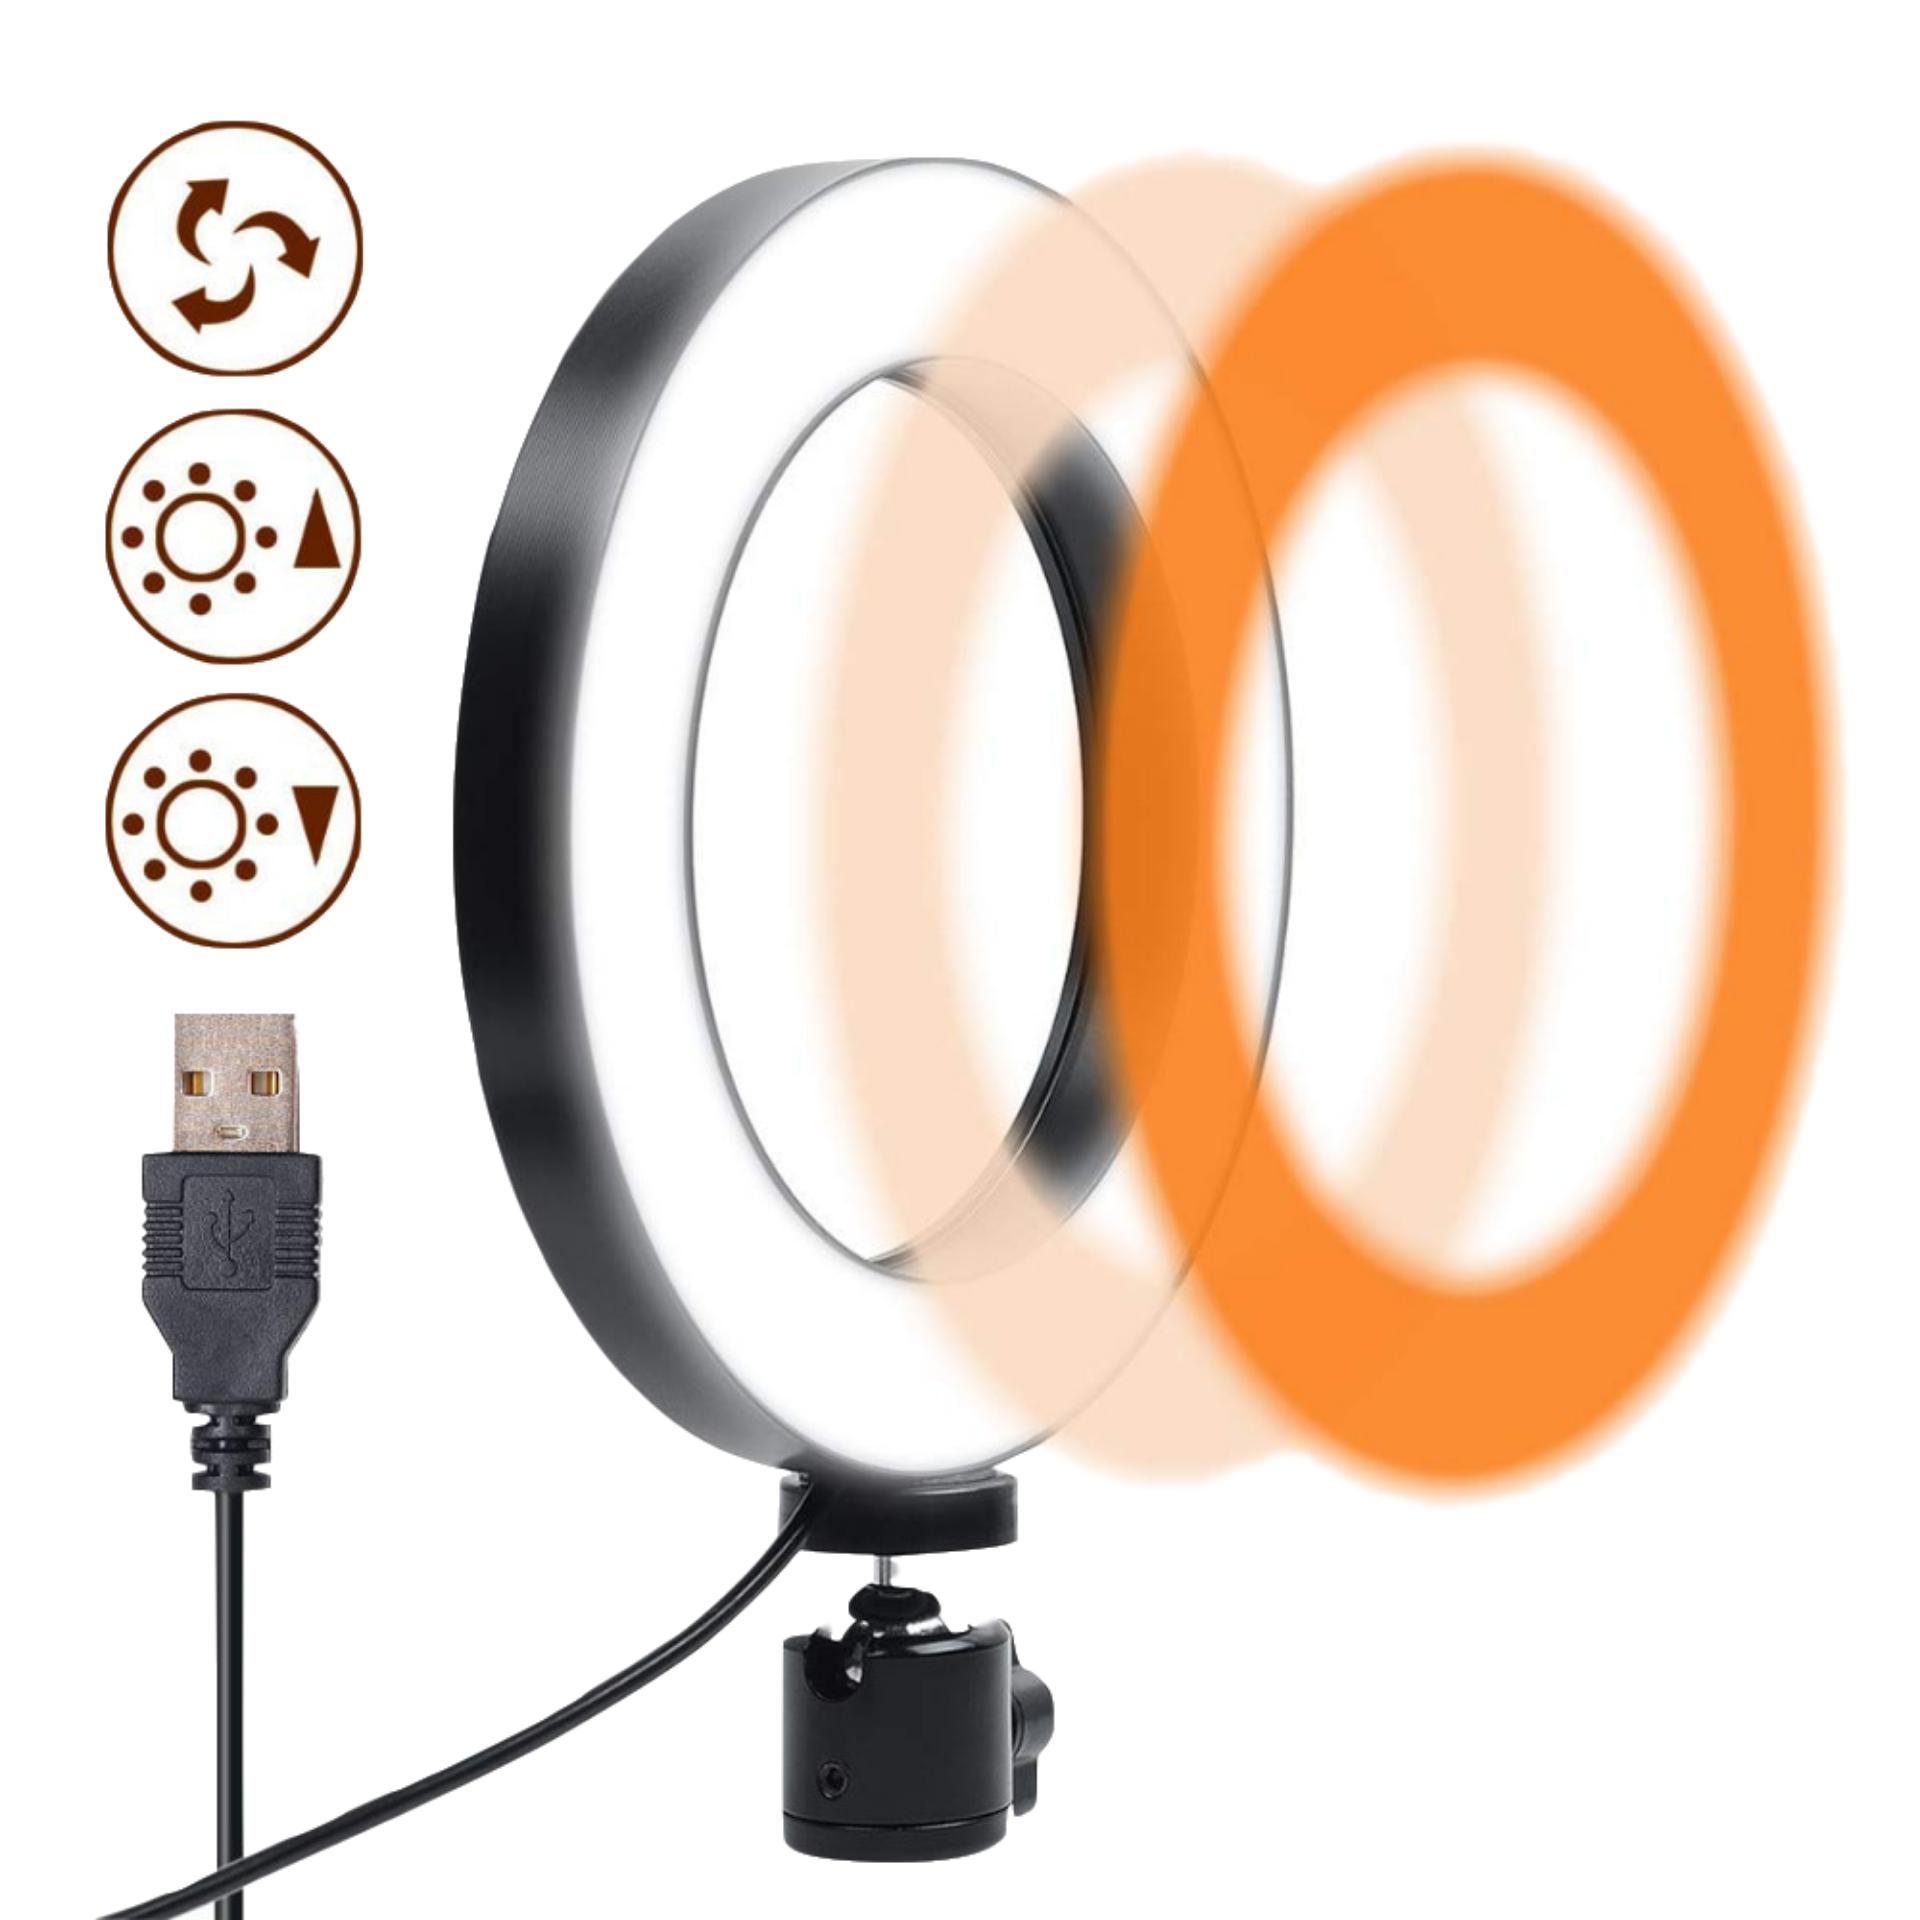 Niceeshop 3 Lights Mode Led Ring Light, Dimmable Plastic 6.3 Inches Usb Beauty Rejuvenation Soft Light For Makeup,live Streaming,youtube Video Shooting,photography Lighting By Nicee Shop.